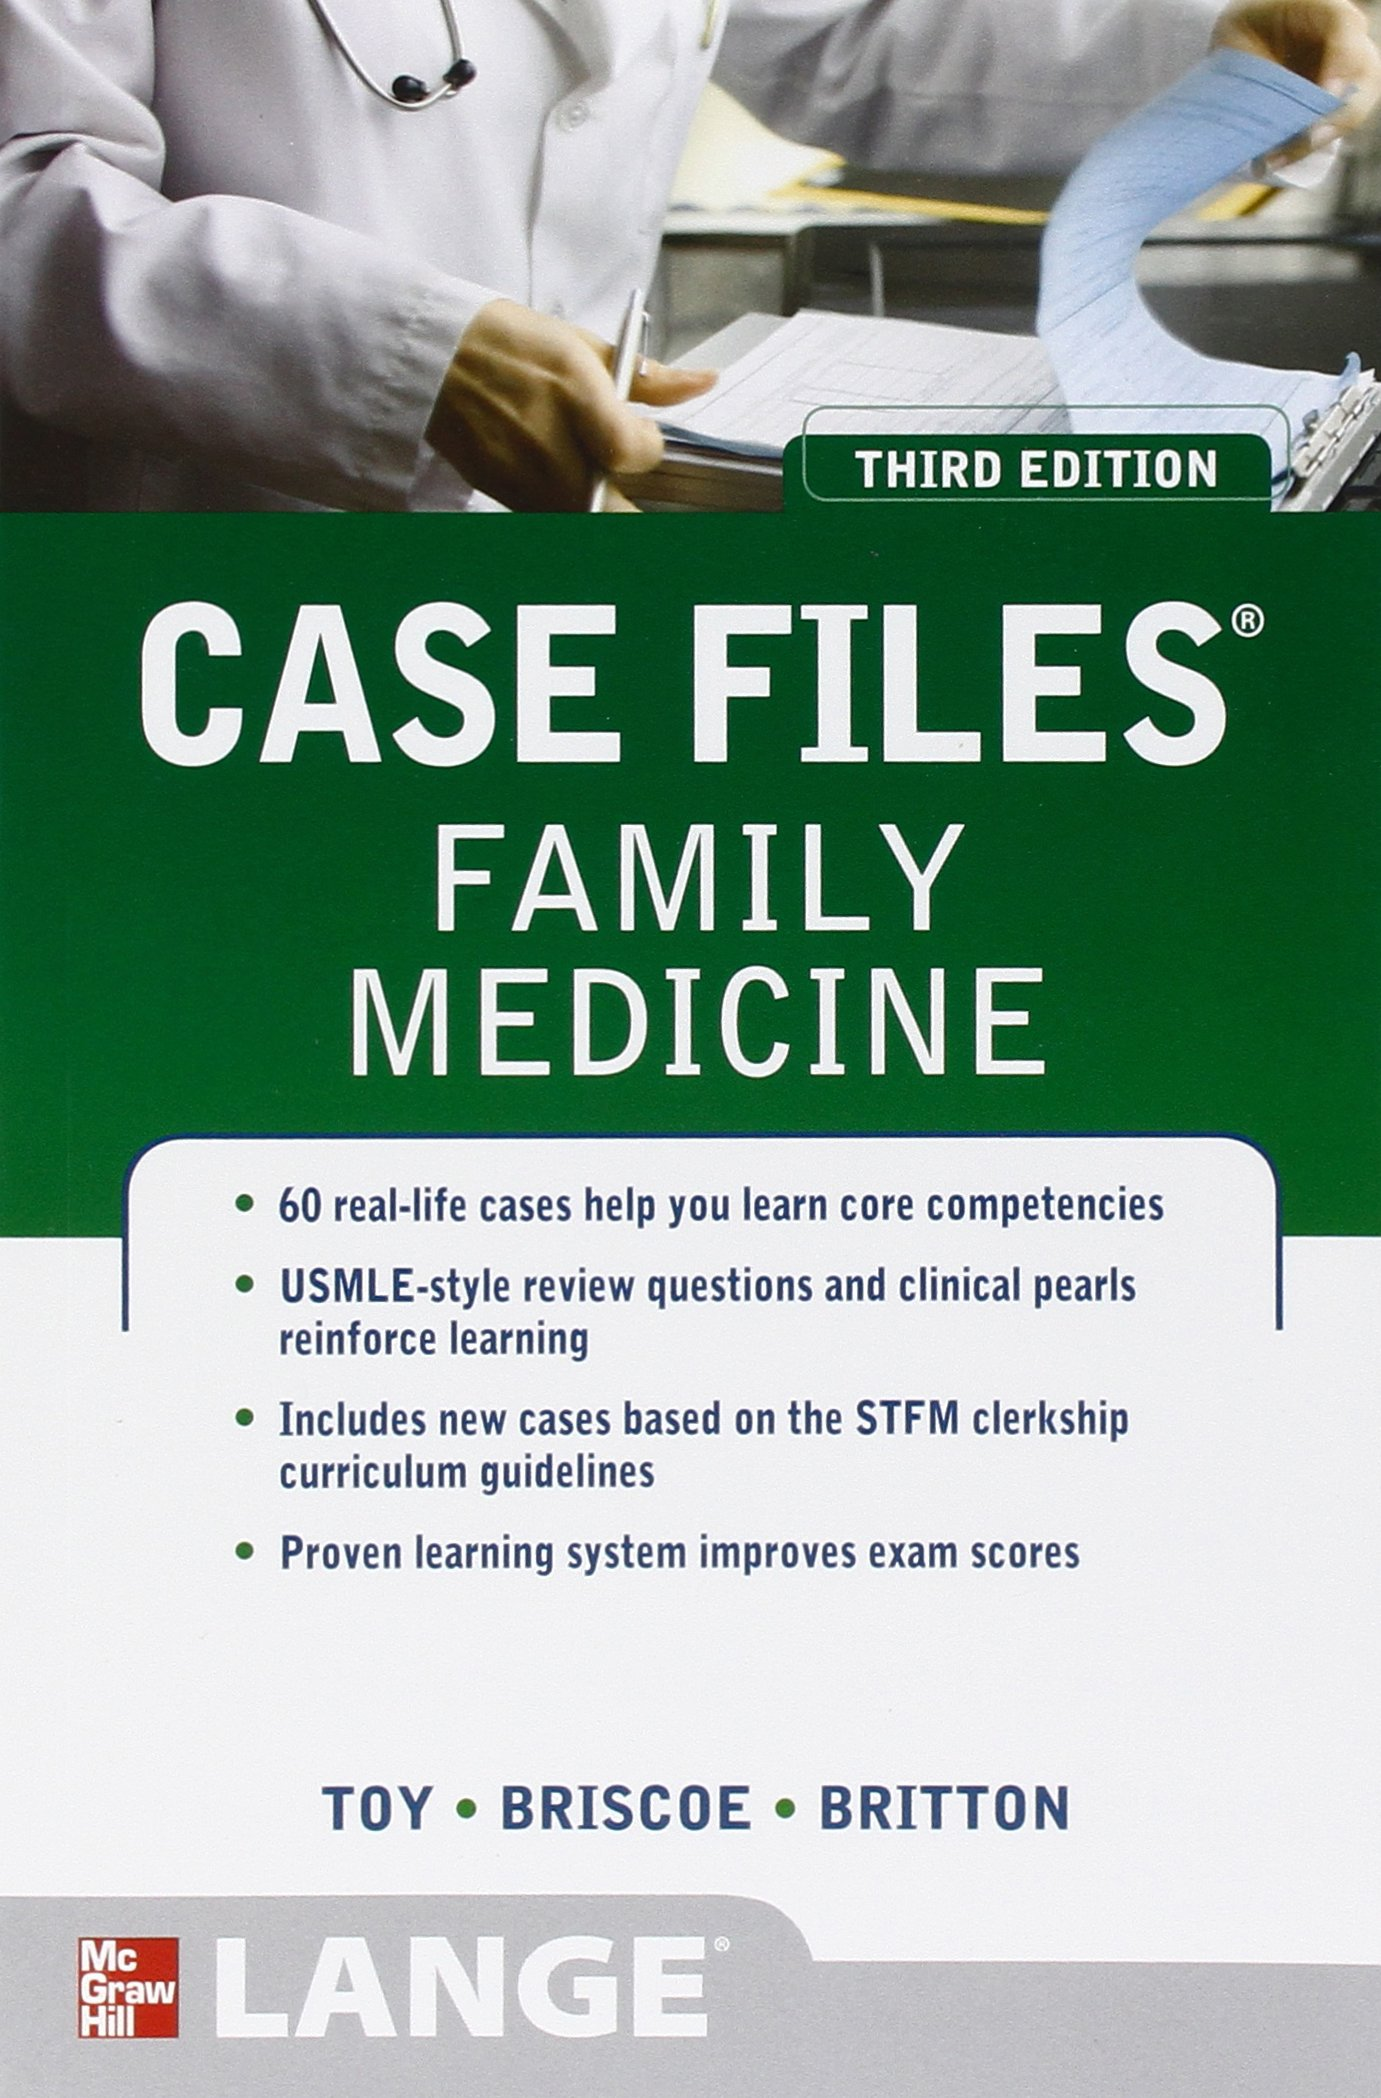 Case files family medicine 4th edition pdf dolapgnetband usmle case files family medicine 4th edition pdf fandeluxe Choice Image